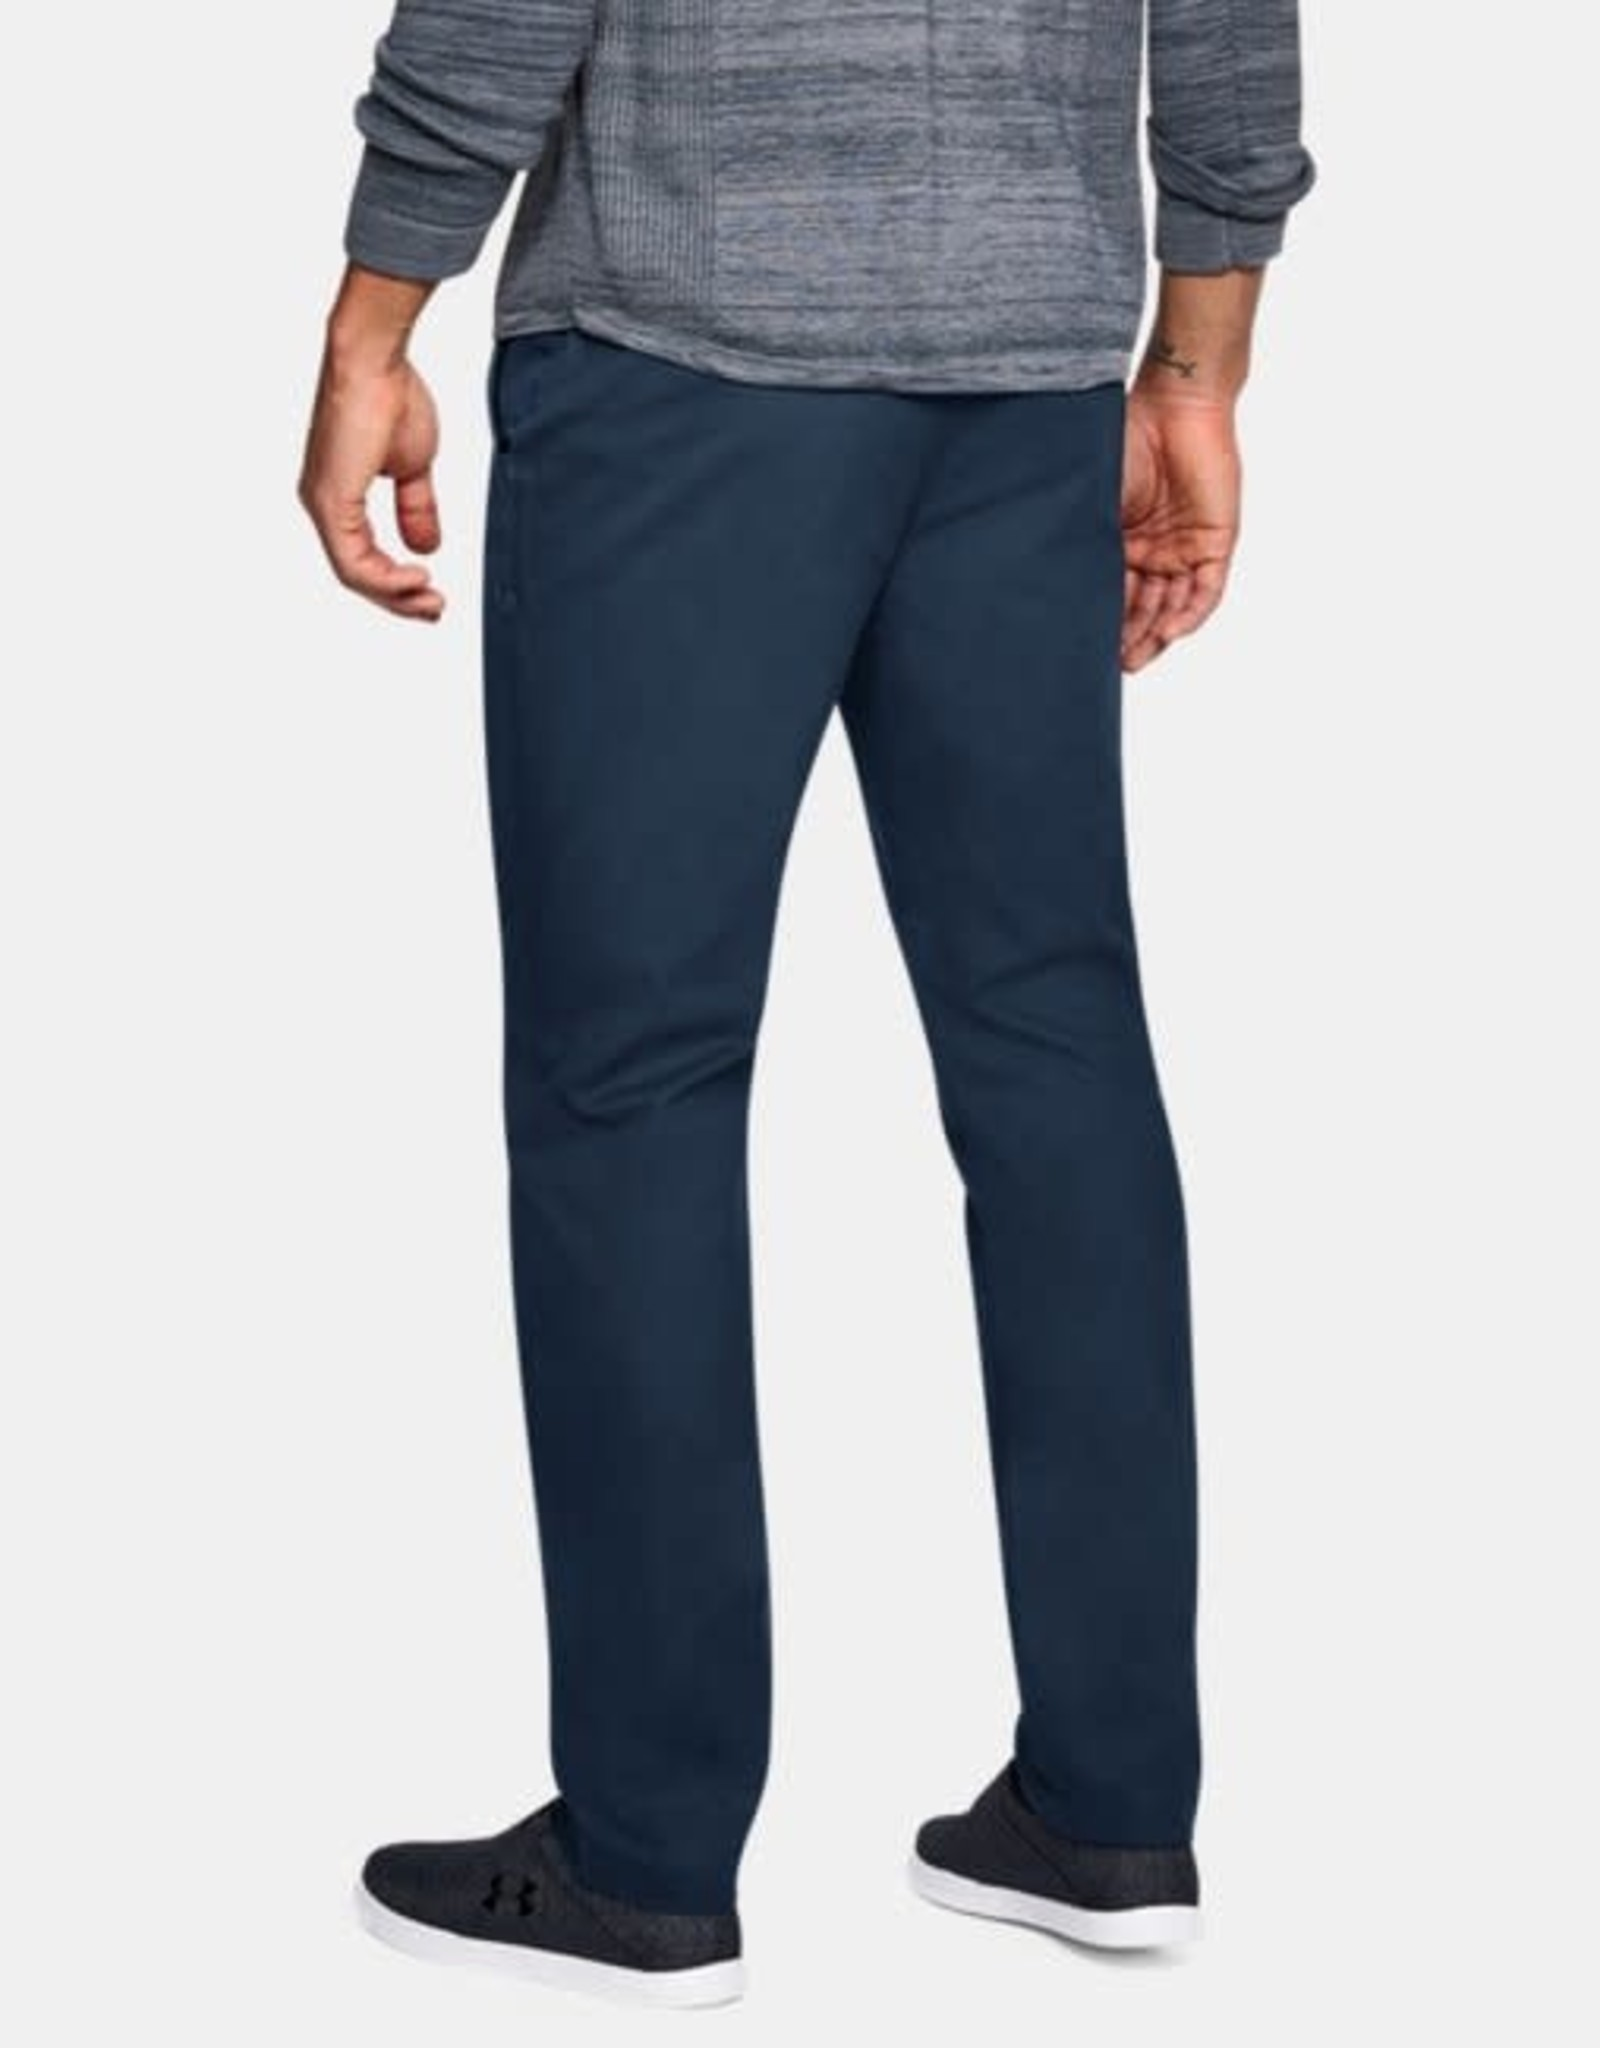 Under Armour Golf Showdown chino taper pant - navy blue